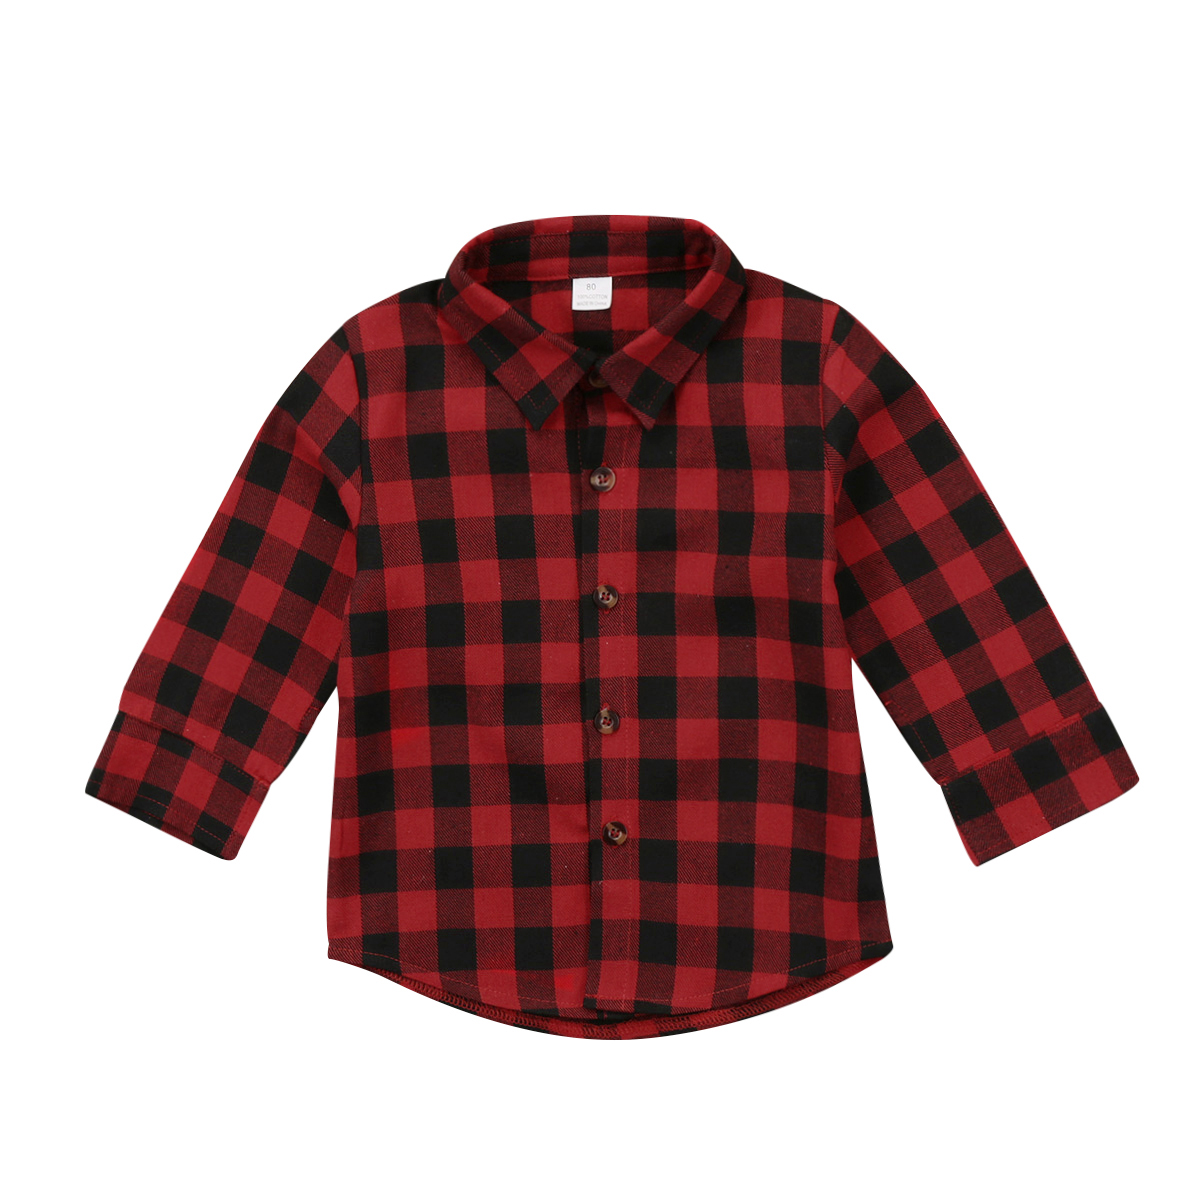 Kids Little Boys Girls Long Sleeve Button Down Red Plaid Flannel Shirt Dress with Belt